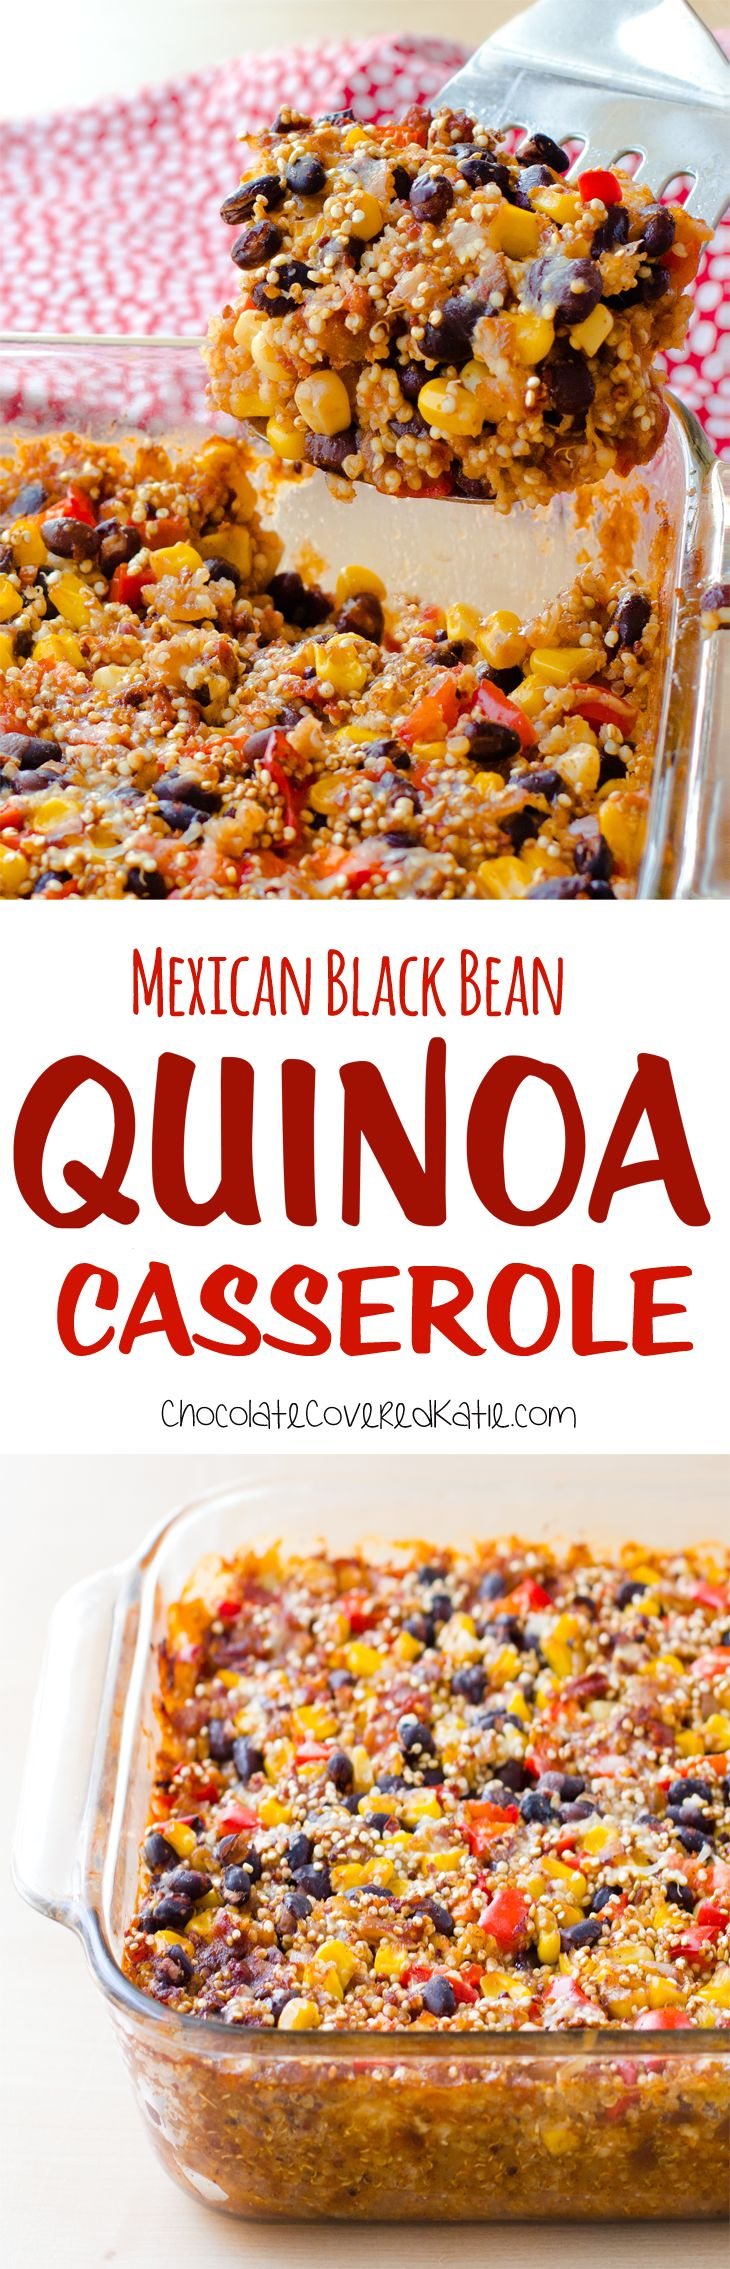 Super easy to make & healthy quinoa casserole, just mix the ingredients together and throw it in the oven! Full recipe: http://chocolatecoveredkatie.com/2016/09/19/quinoa-casserole-mexican-black-bean/ @choccoveredkt